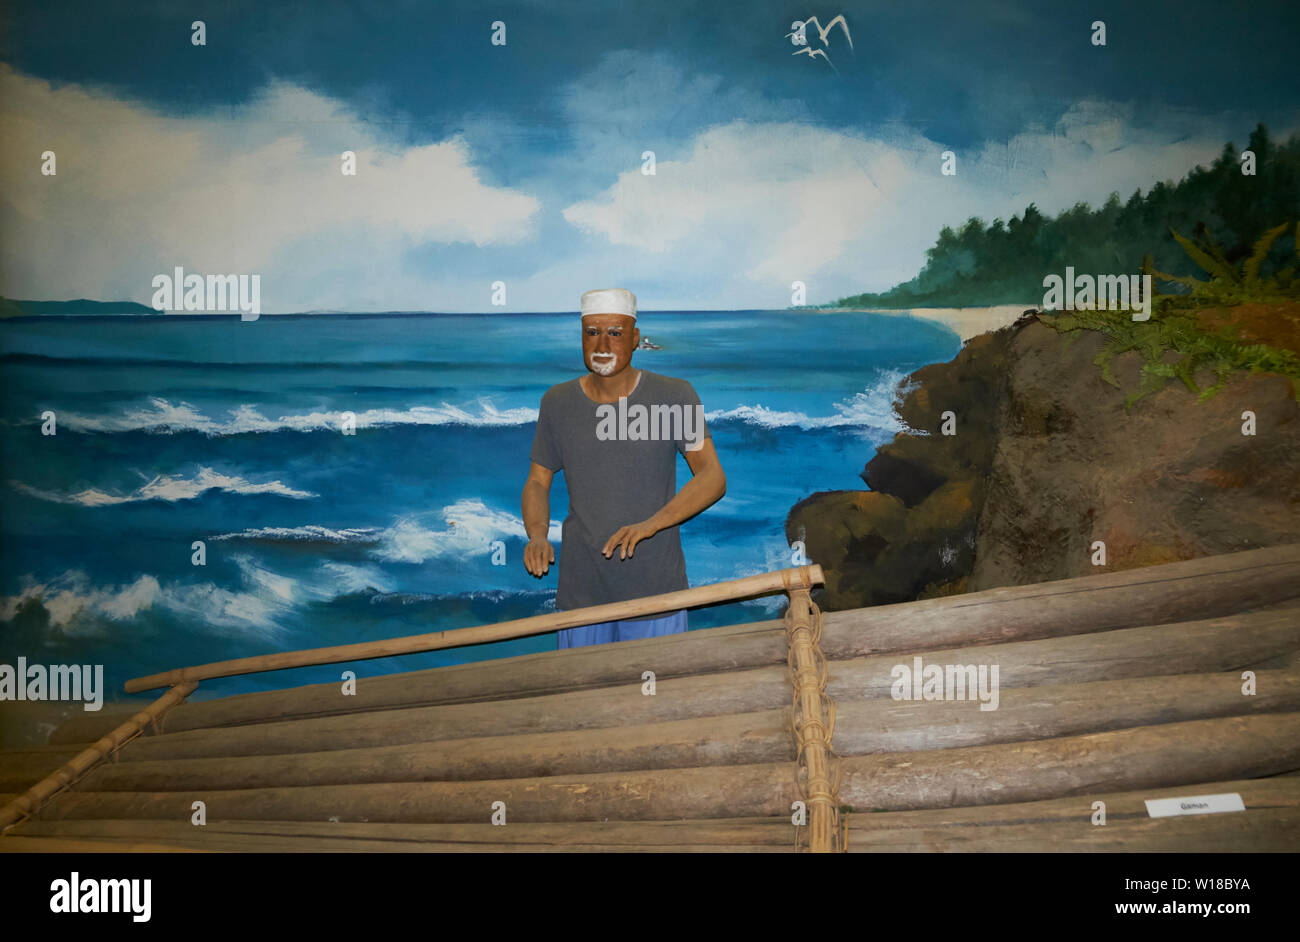 Diorama of a Kampong man building a raft in the Malay Technology Museum in Bandar Seri Begawan, Brunei - Stock Image